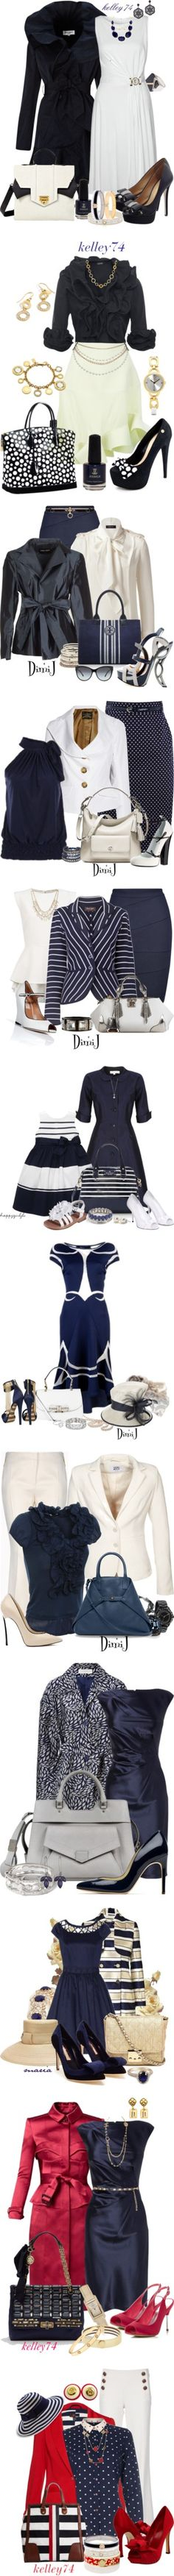 """""""In the Navy"""" by kelley74 ❤ liked on Polyvore"""